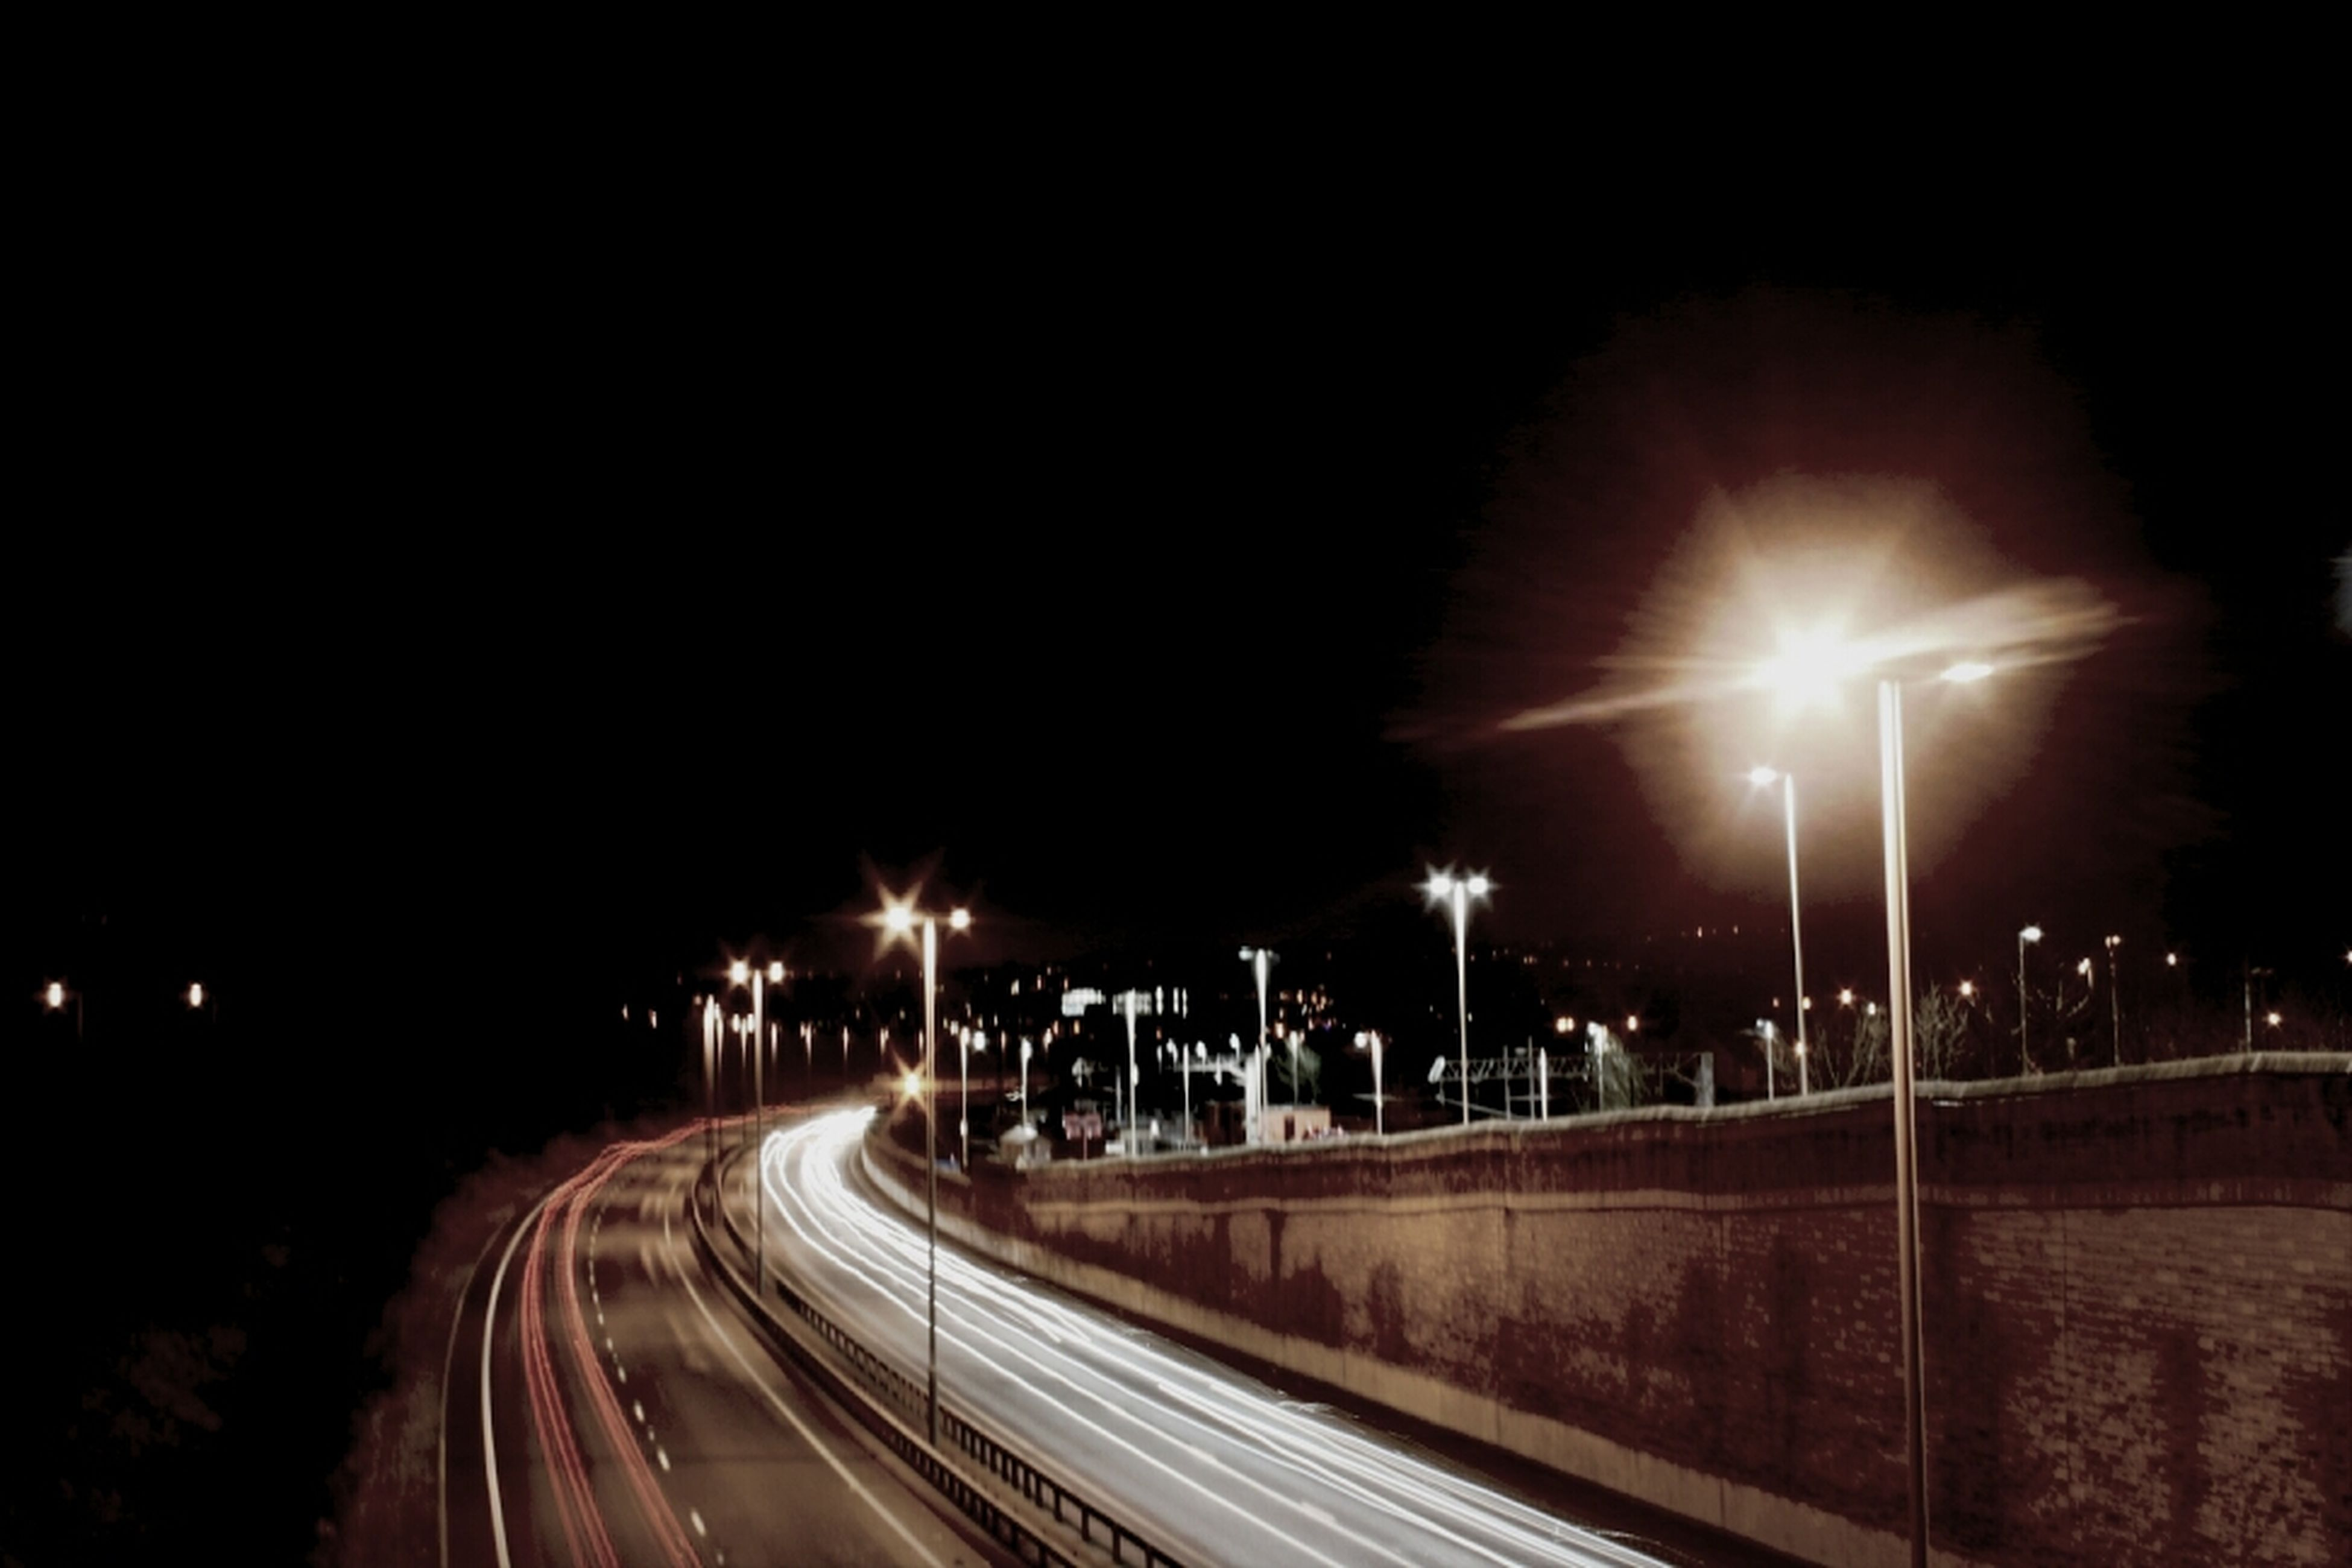 night, illuminated, long exposure, light trail, street light, transportation, road, speed, motion, lighting equipment, street, the way forward, blurred motion, light - natural phenomenon, copy space, city, glowing, clear sky, diminishing perspective, outdoors